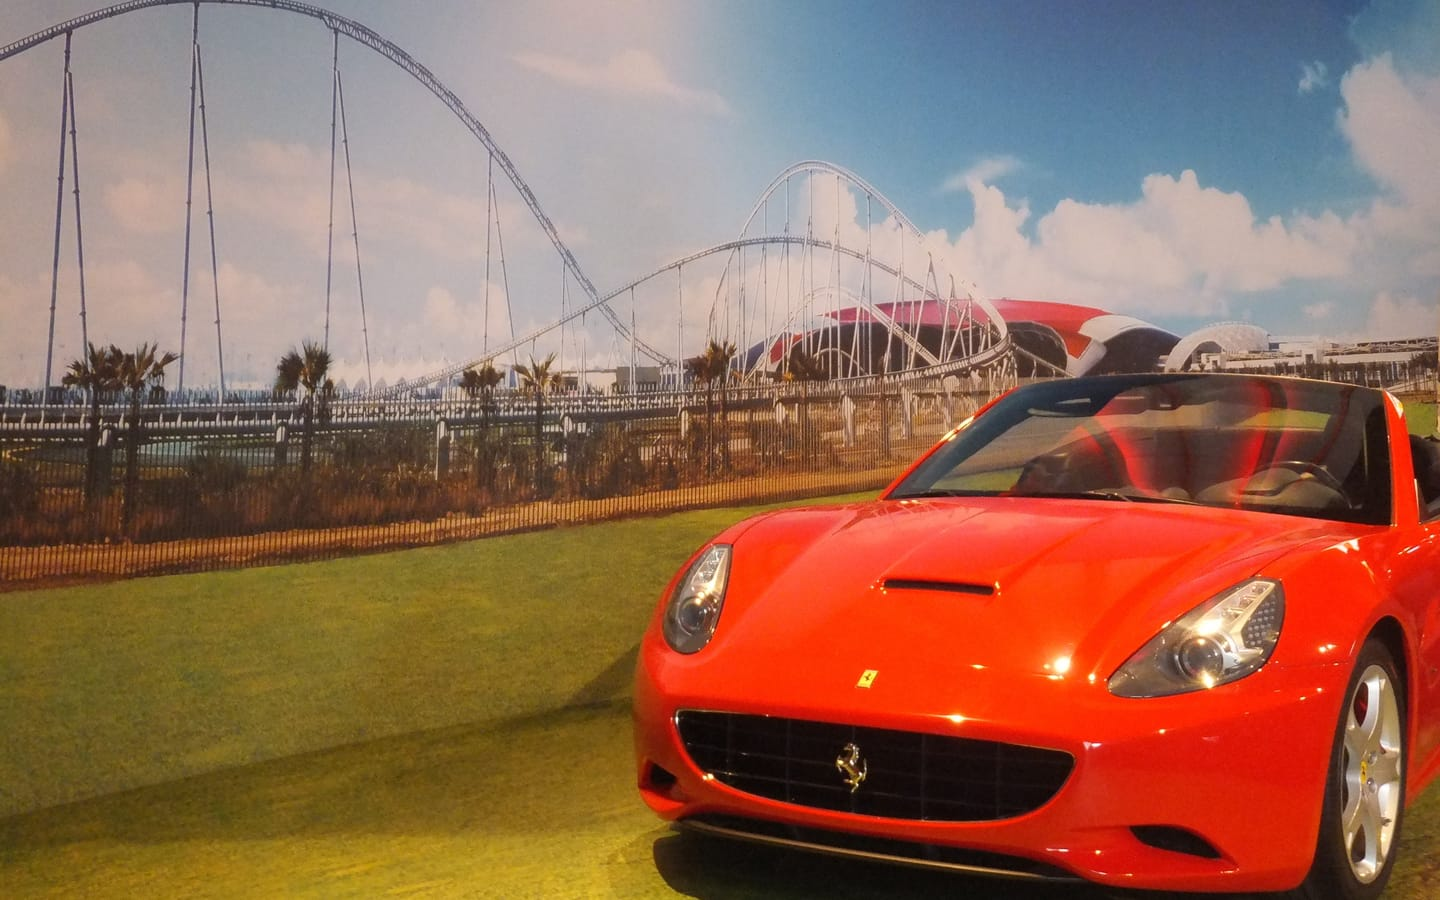 Review Of Ferrari World Abu Dhabi Rides Tickets Timings More Tiket Bronze Driving Experience In